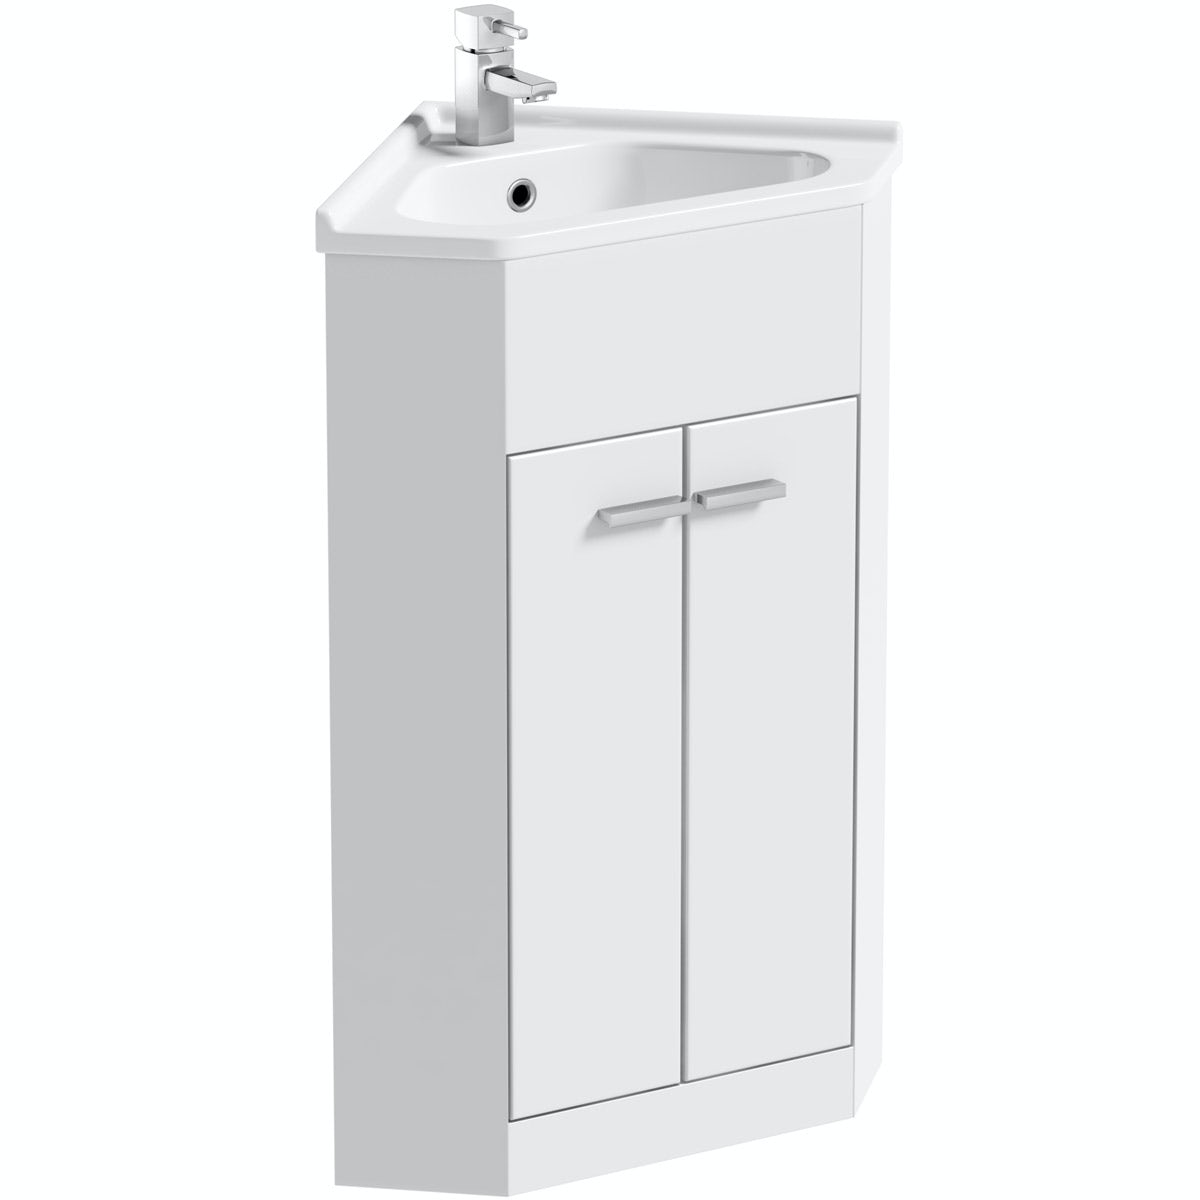 Orchard Compact white corner vanity unit